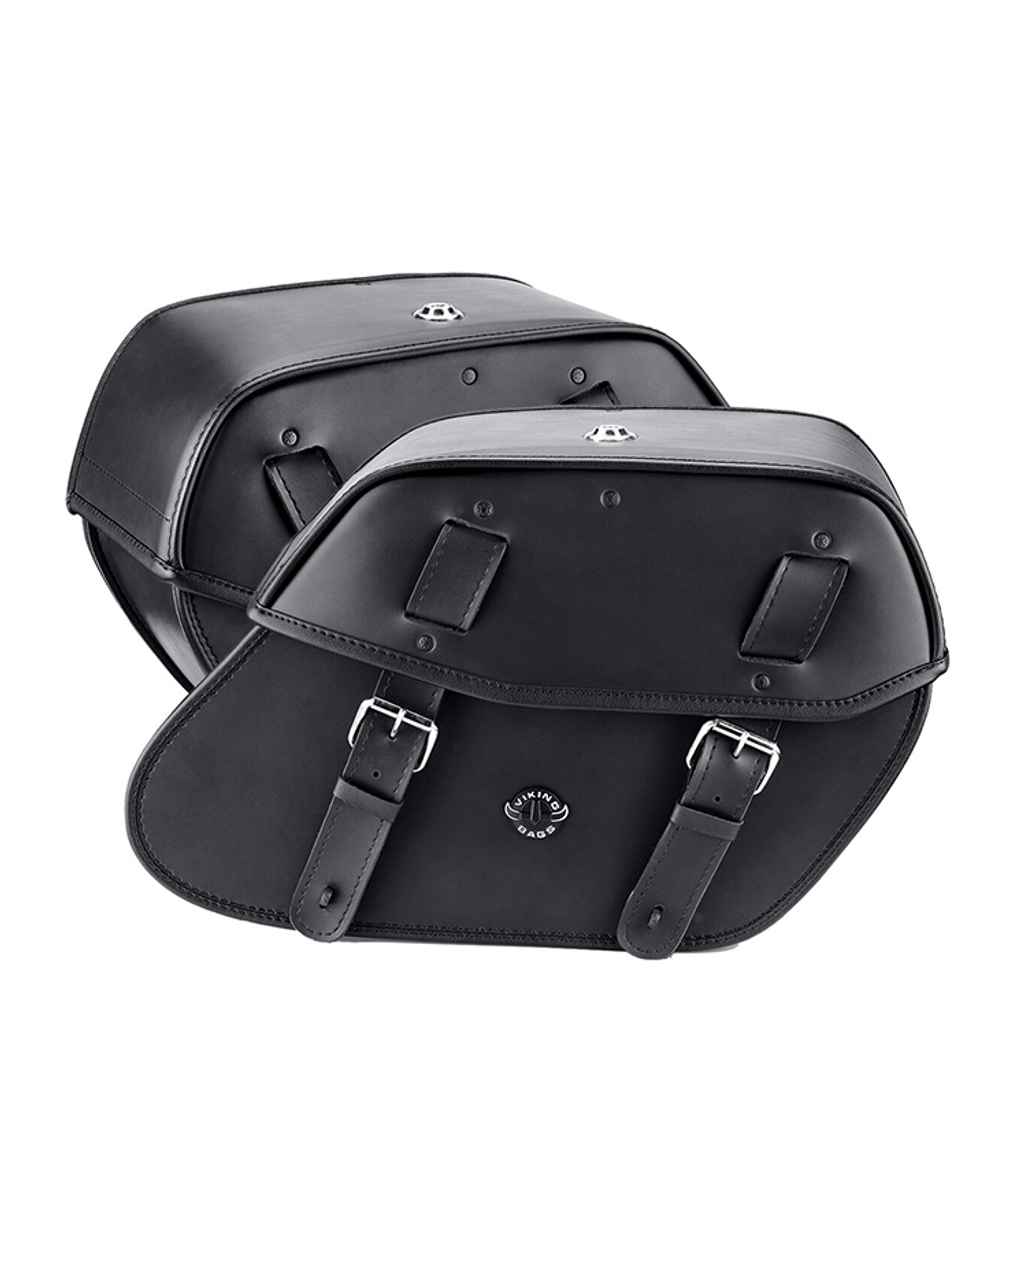 Viking Odin Medium Motorcycle Saddlebags For Harley Softail Standard FXST Both Bags View